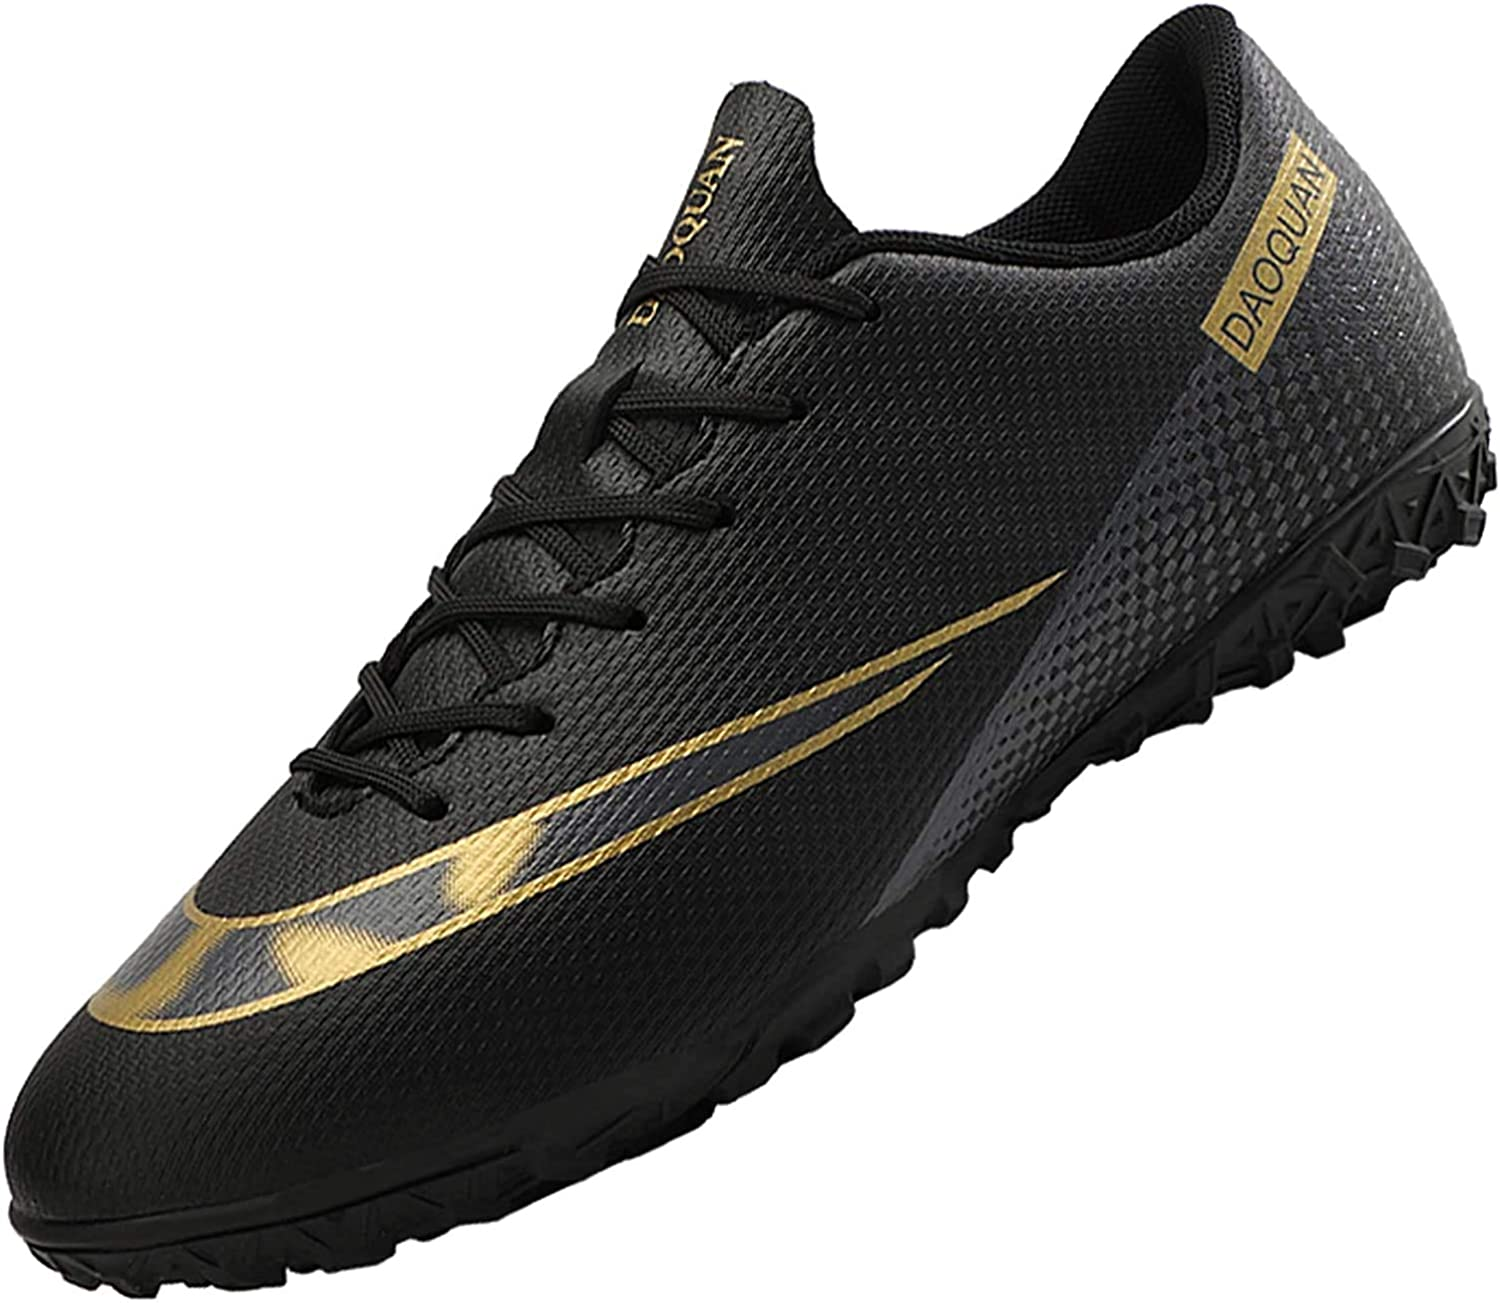 Men's Soccer Shoes for Football Grou Athletic Bargain Professional TF Rapid rise CR